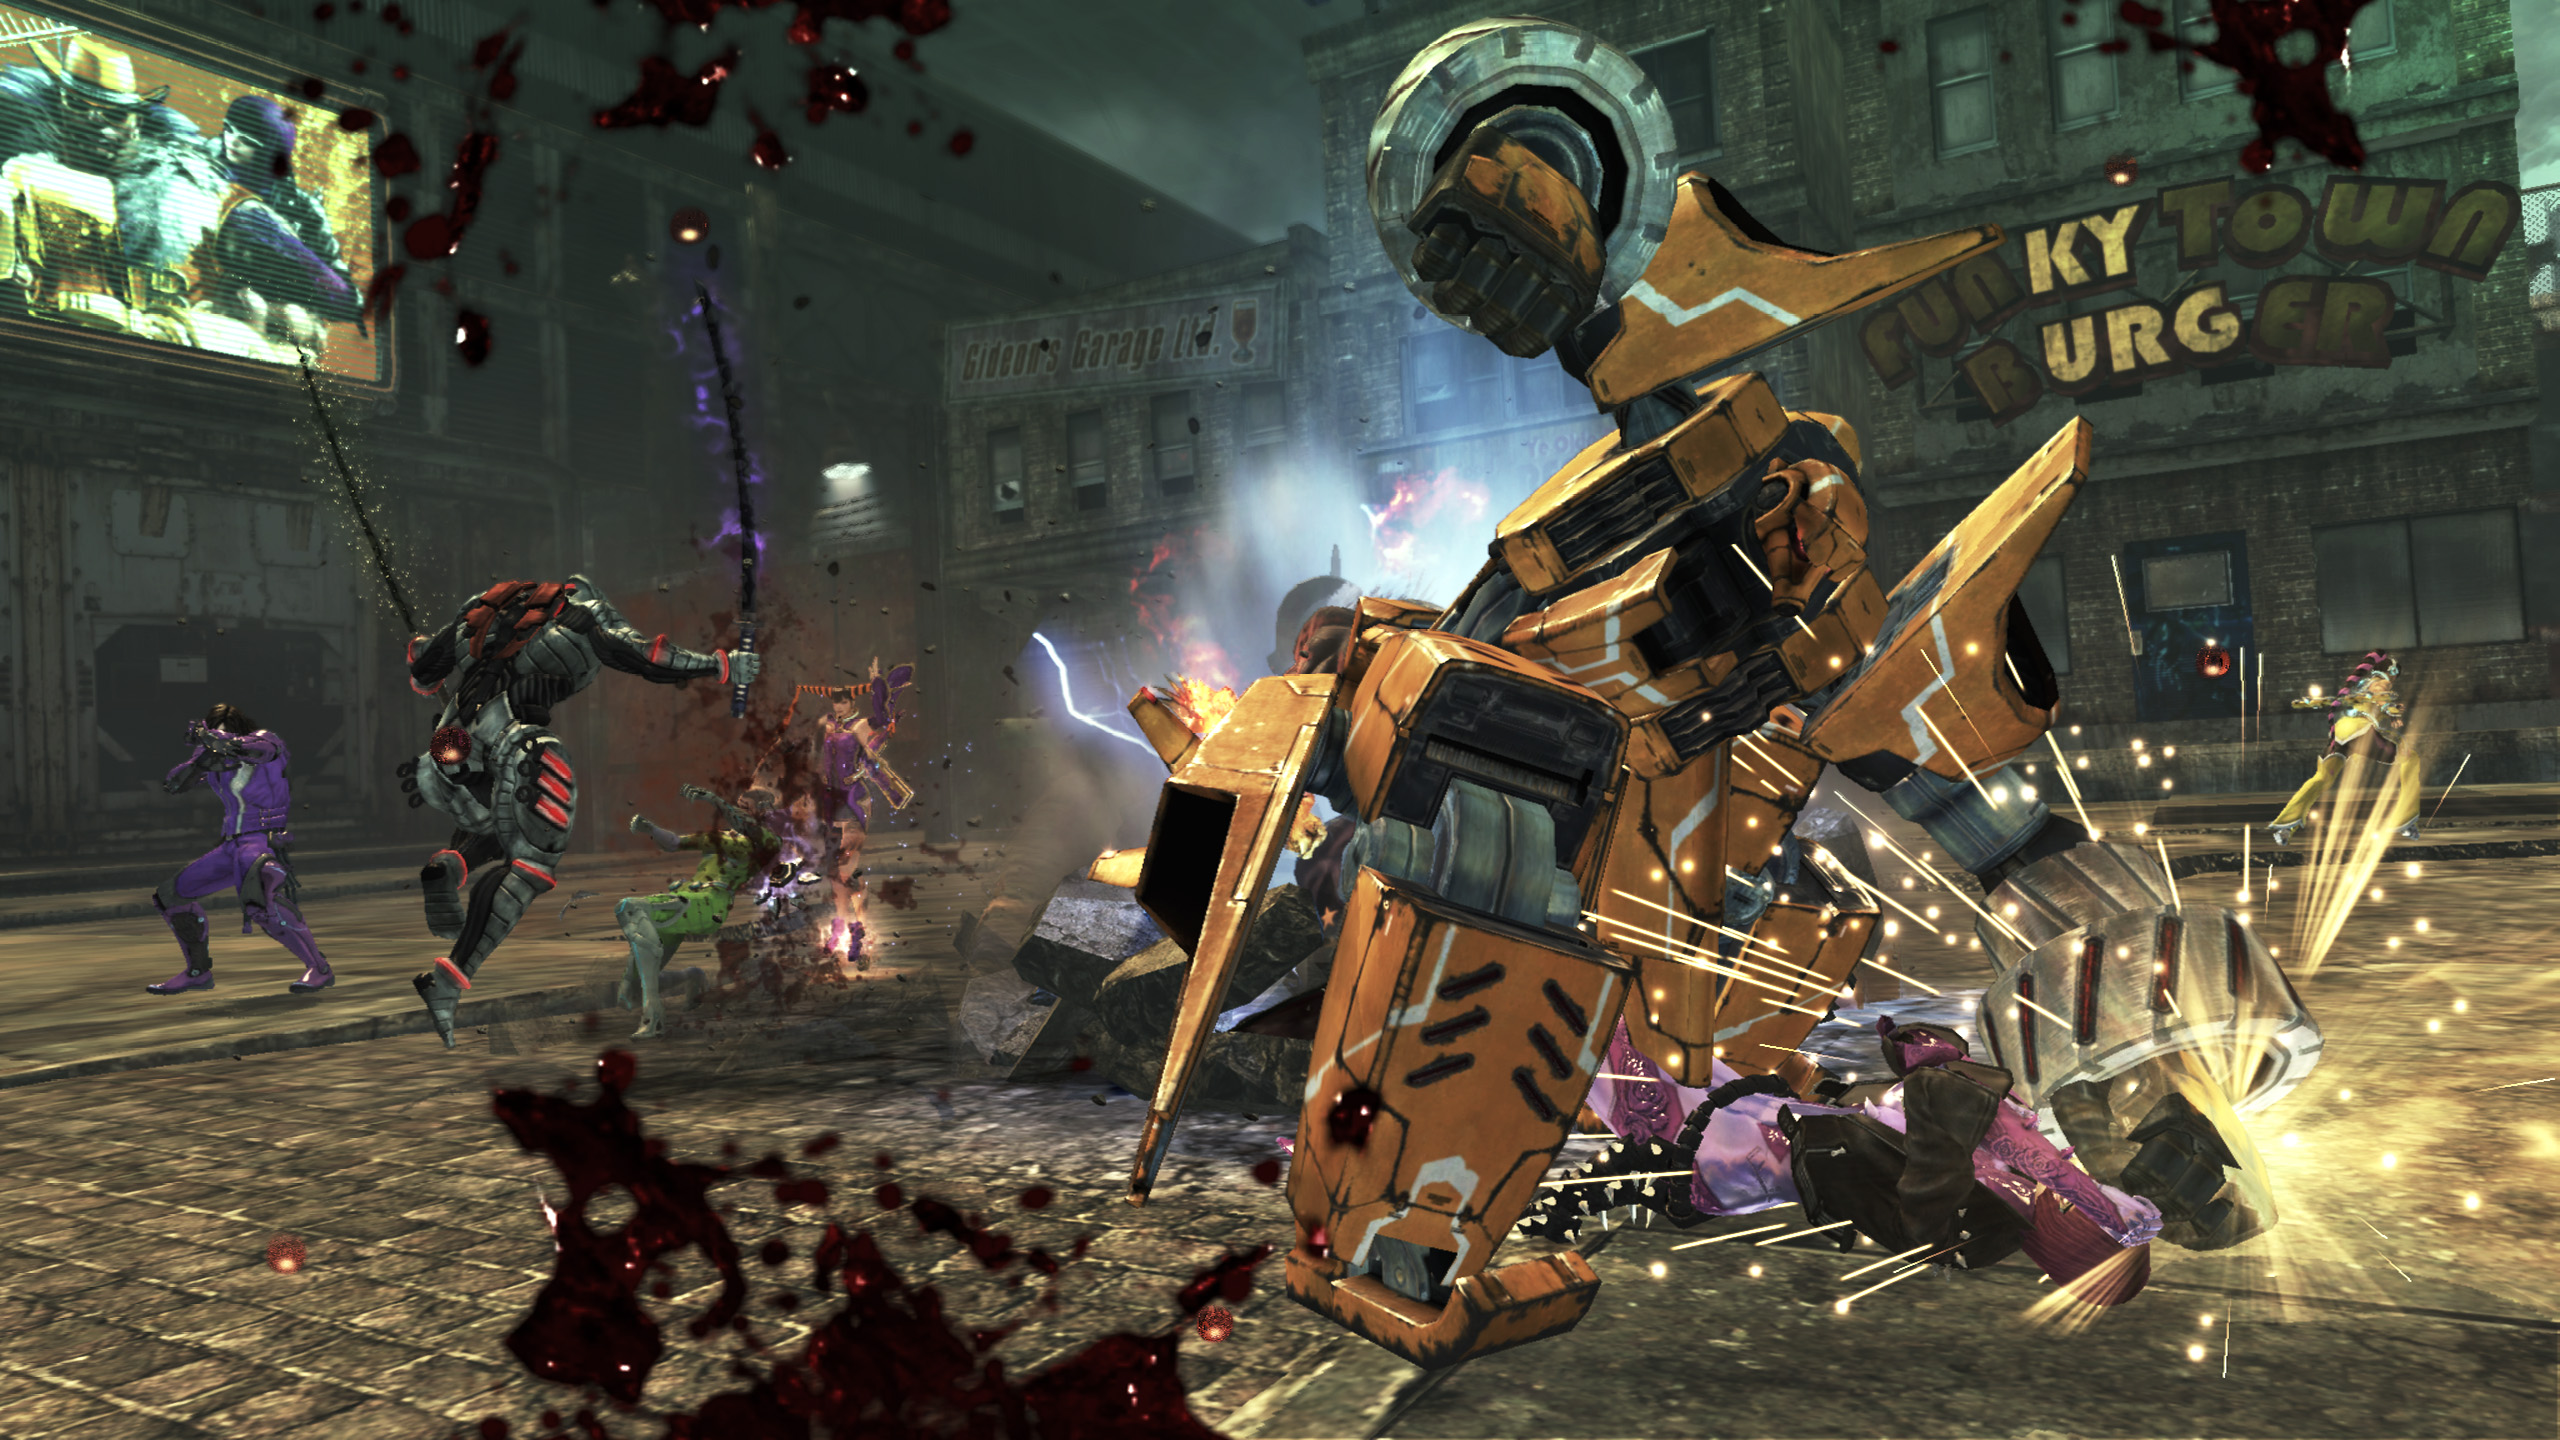 Anarchy Reigns: Screenshot aus dem Multiplayer-Prügelspiel